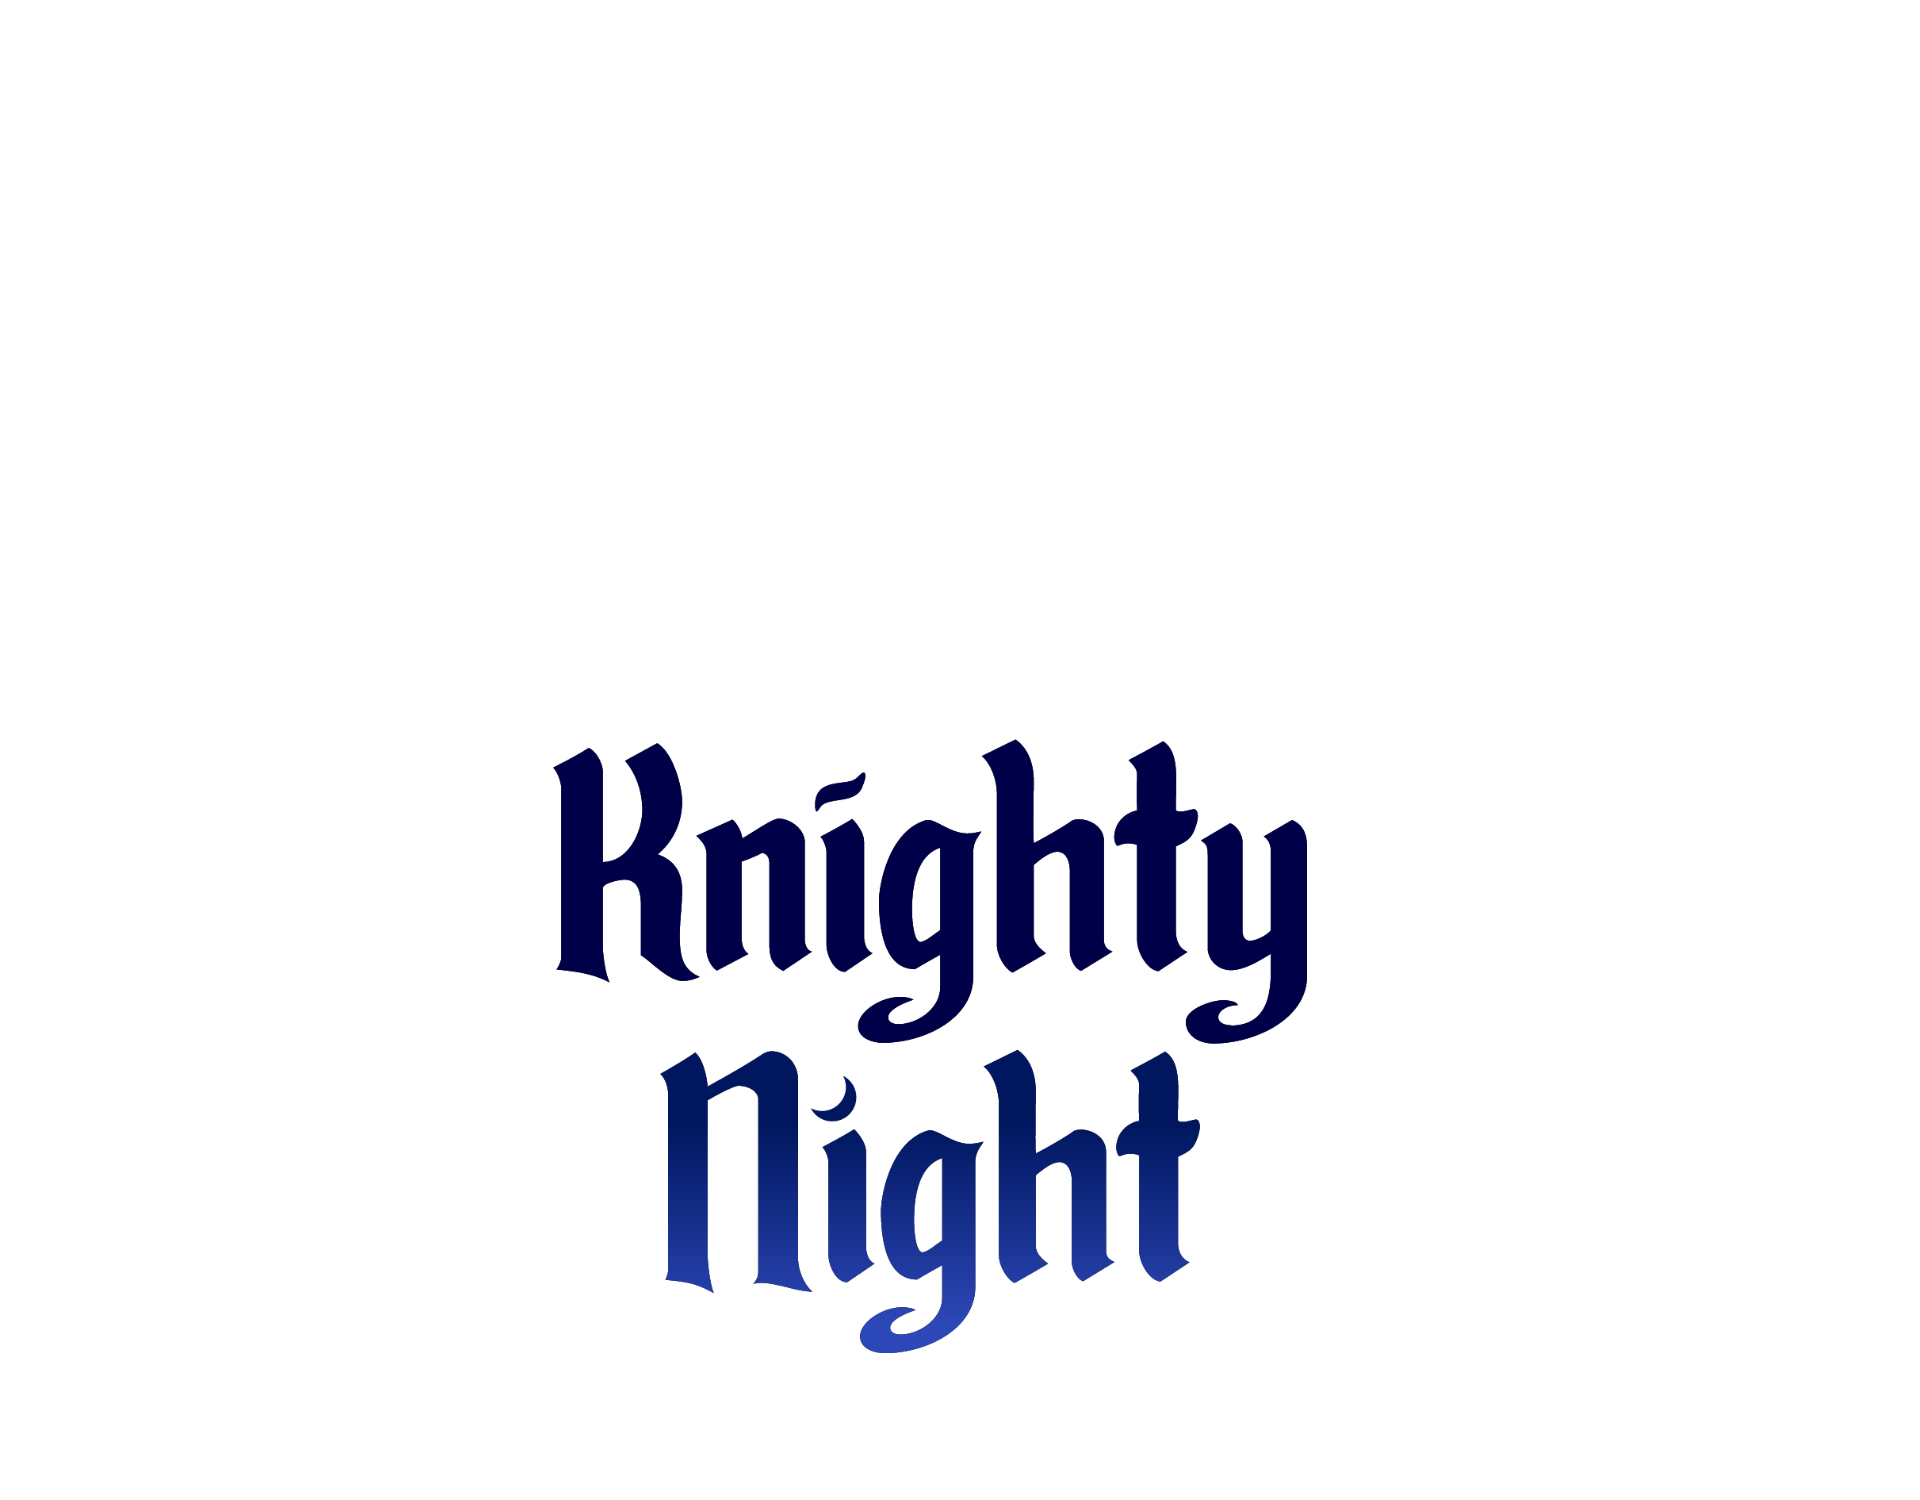 Knighty Night